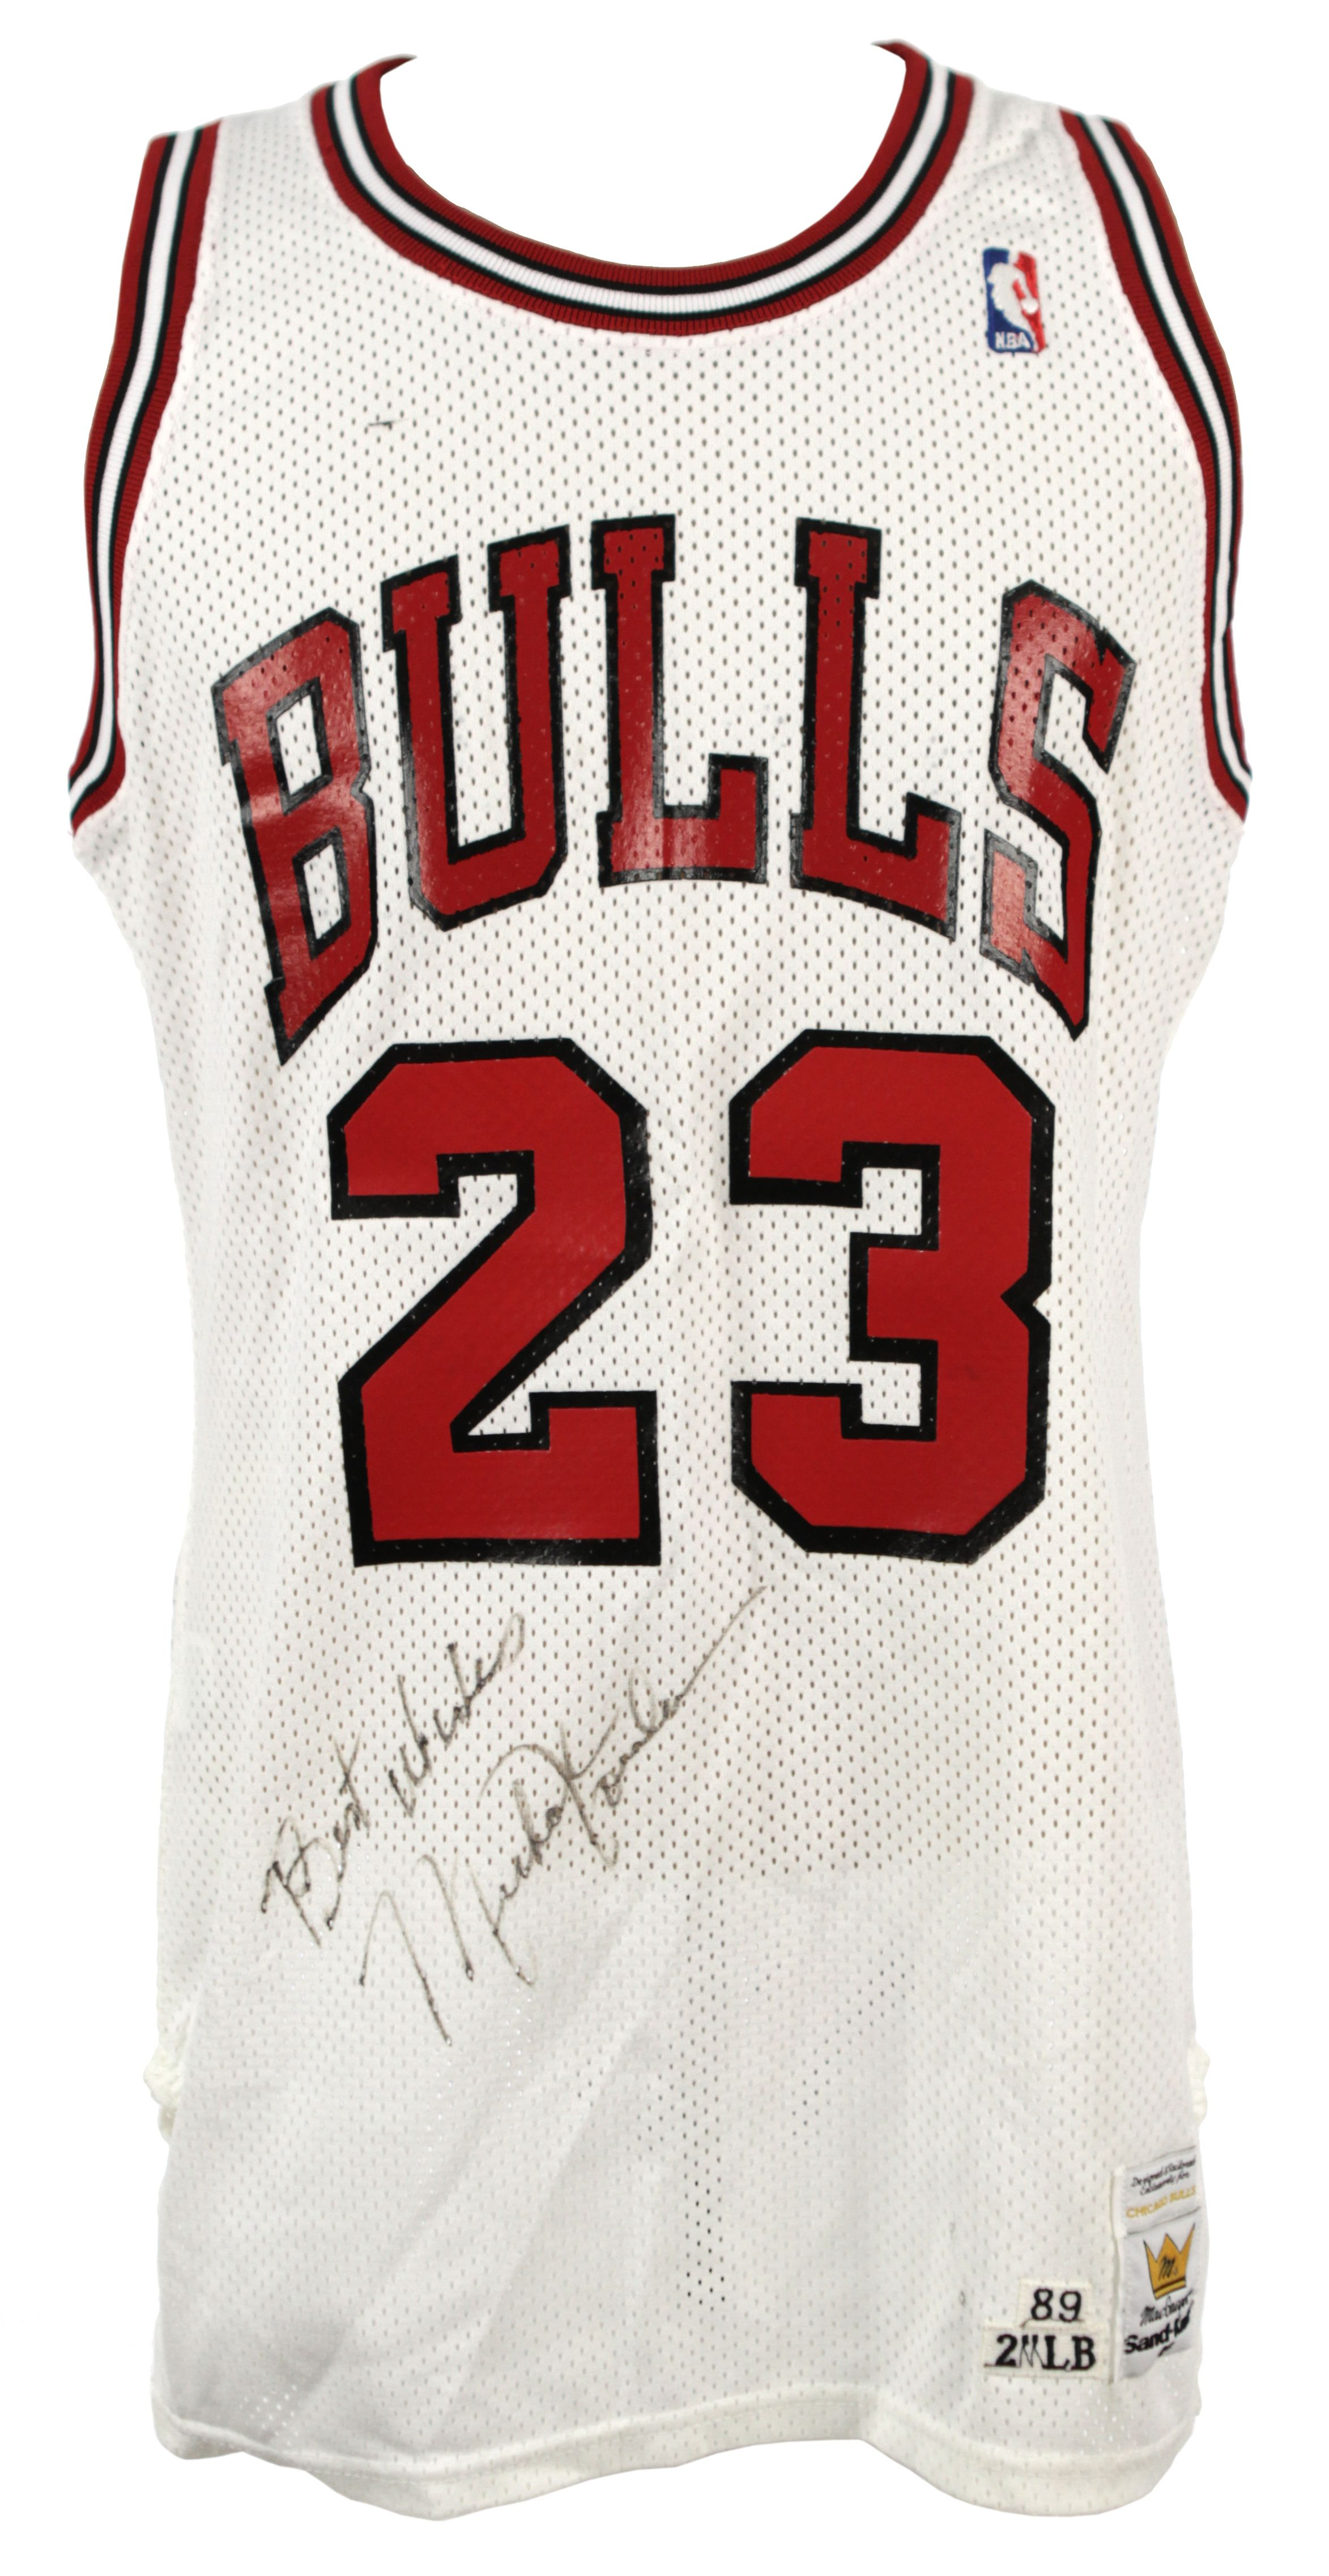 b1c54a17c8df0e ... Michael Jordan Chicago Bulls Game Worn Signed Jersey w  vintage  autograph -. Touch to zoom